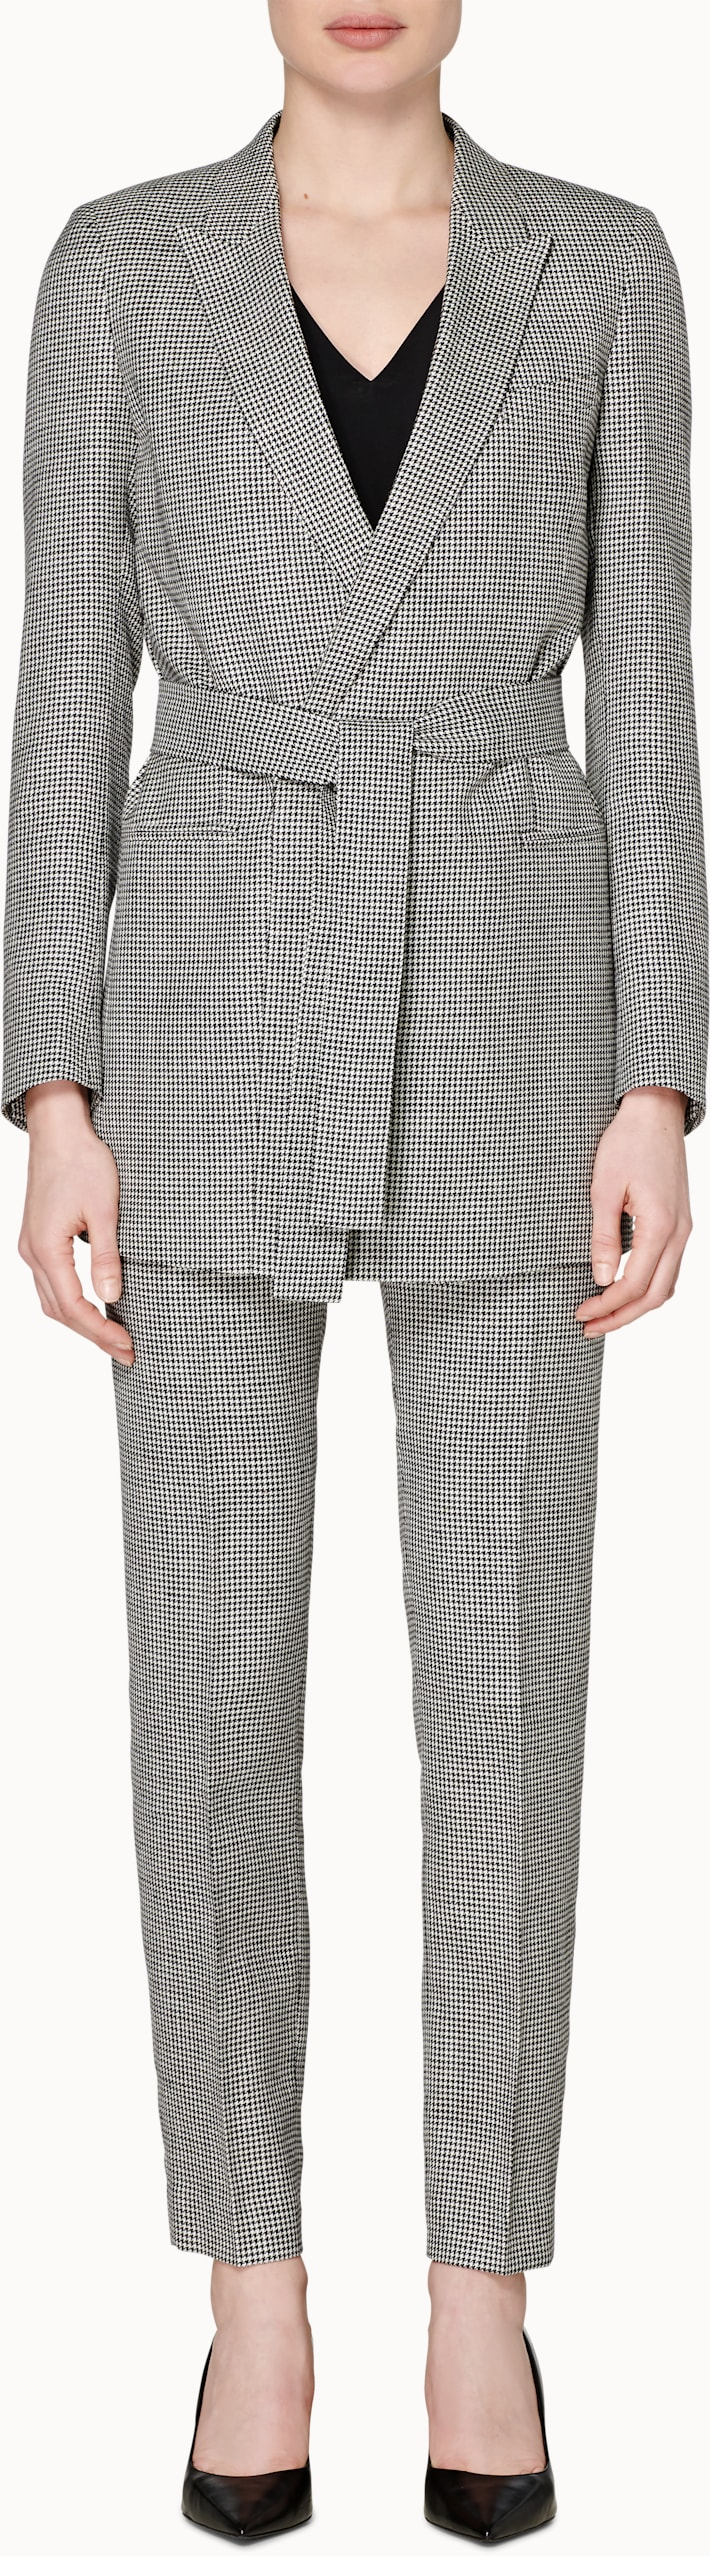 Tory Black & White Houndstooth Suit